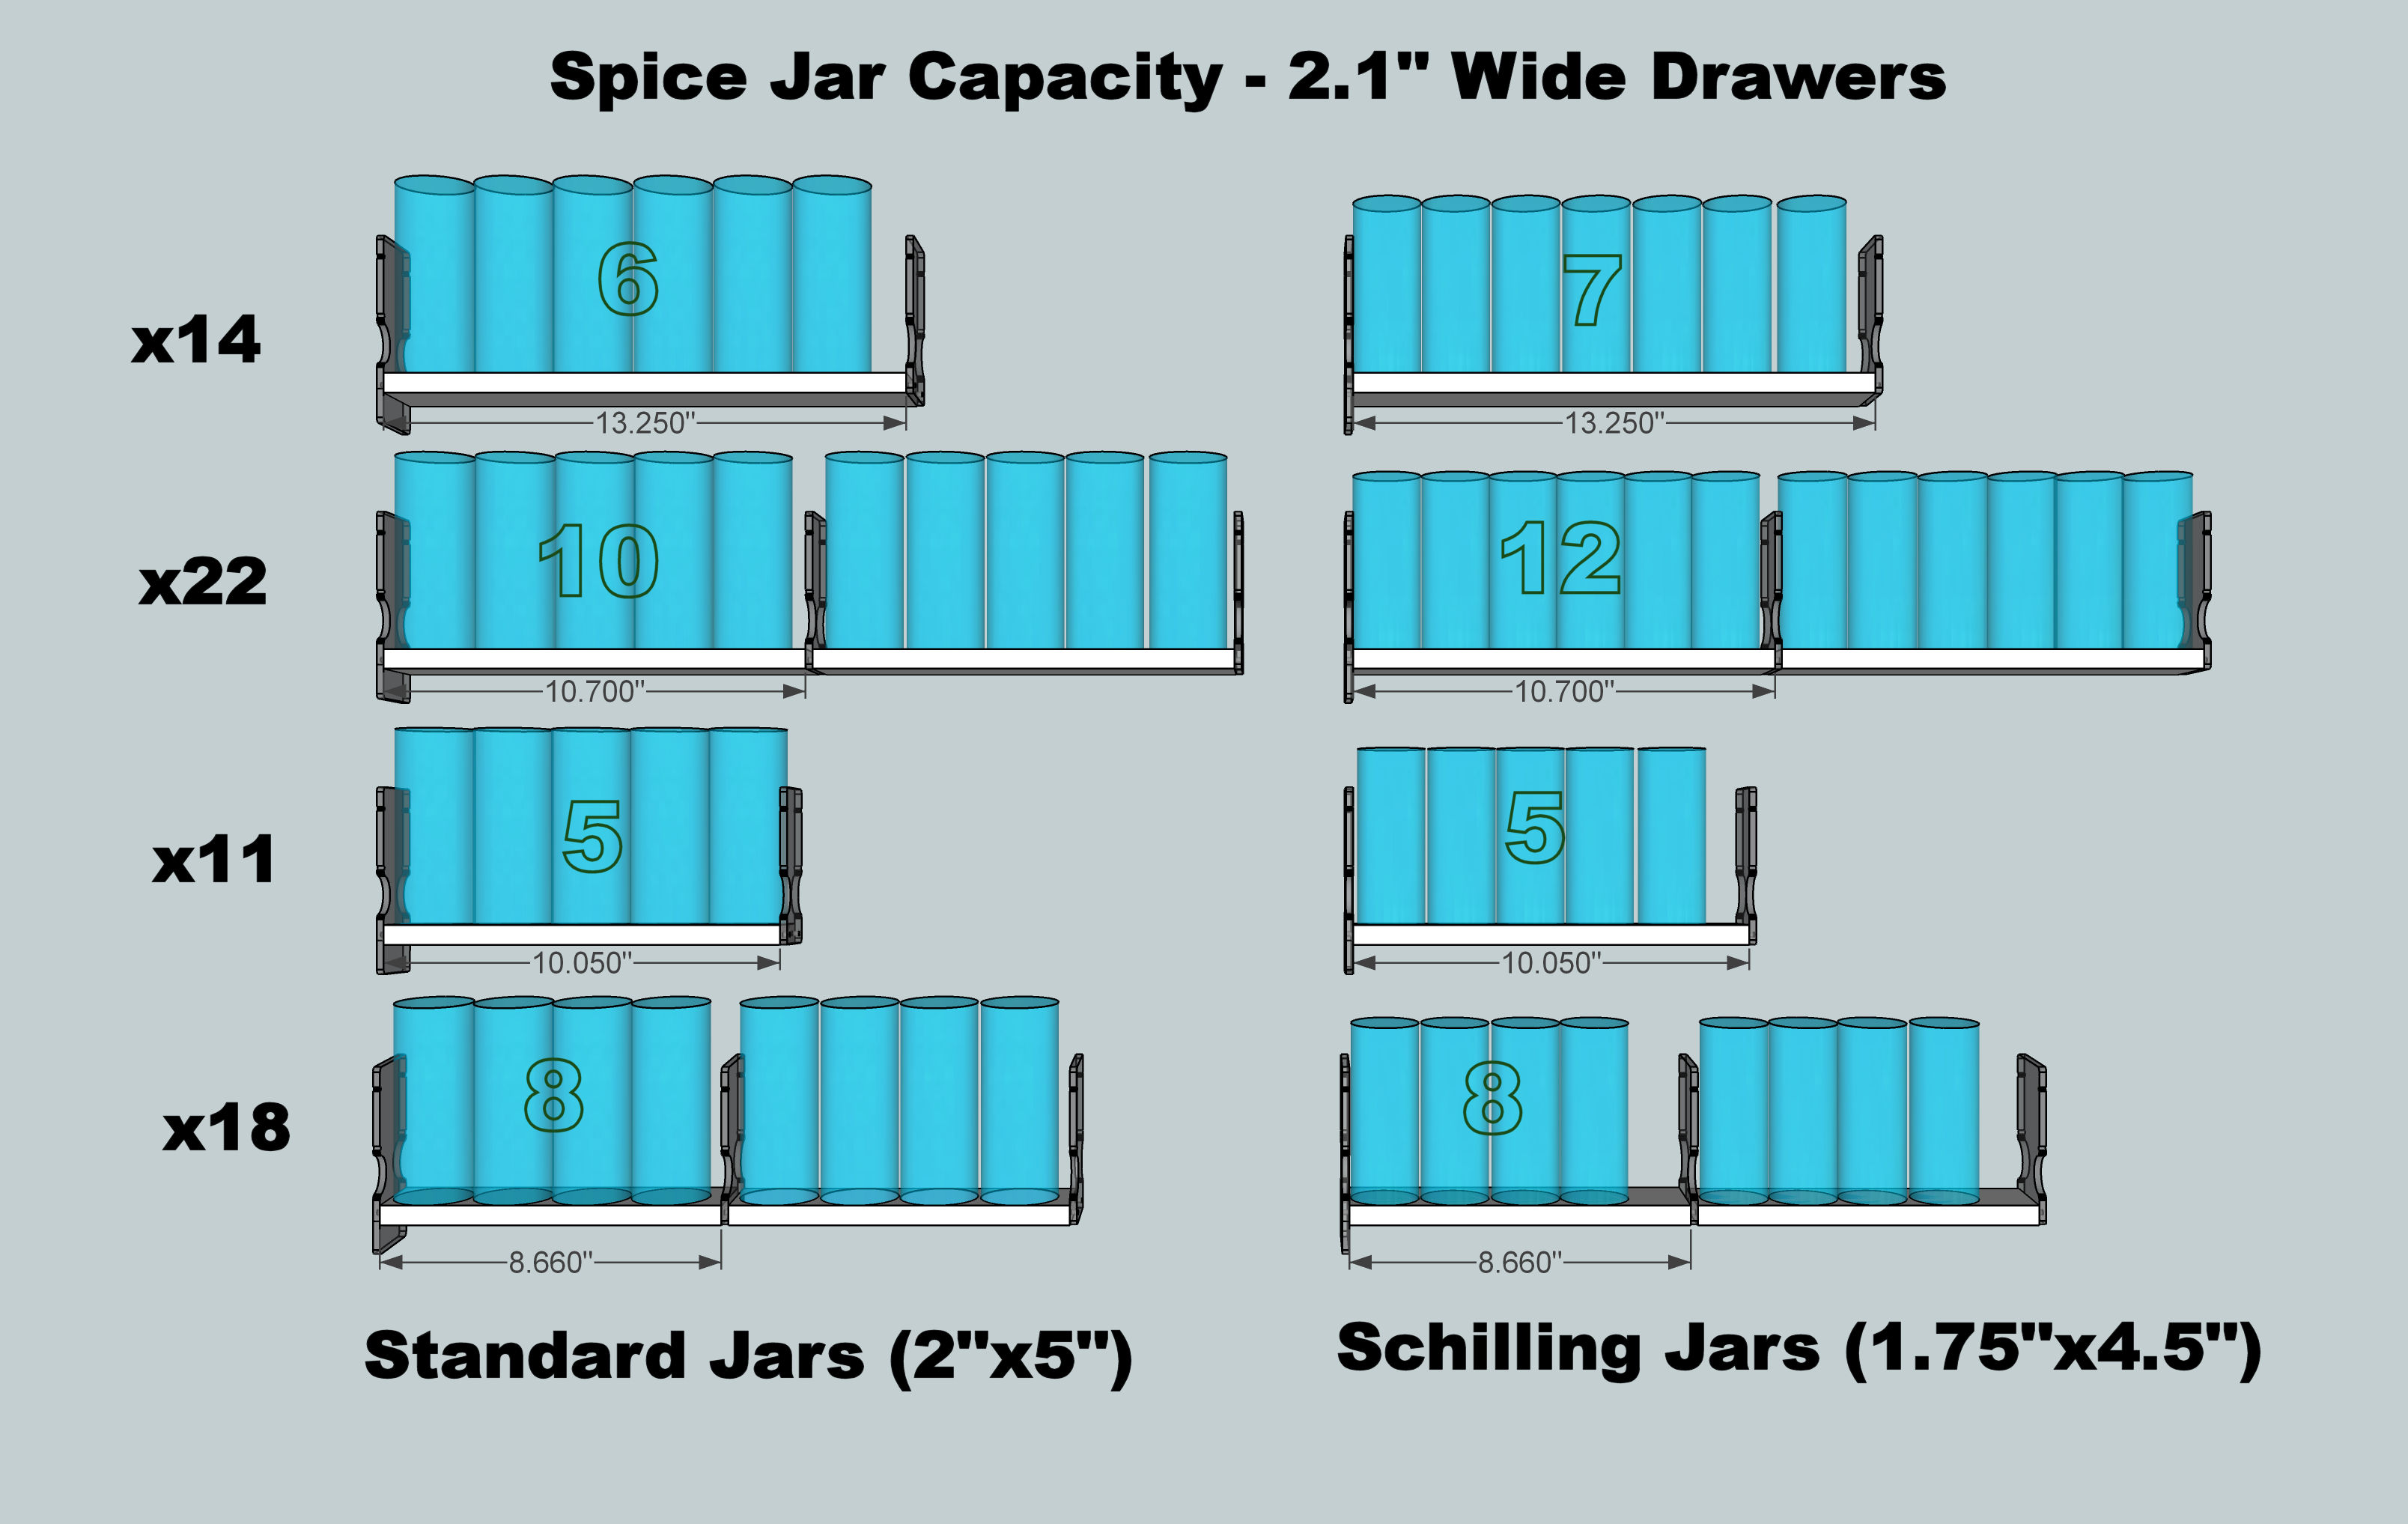 Spice Jar Fits in Spice Rack Drawers